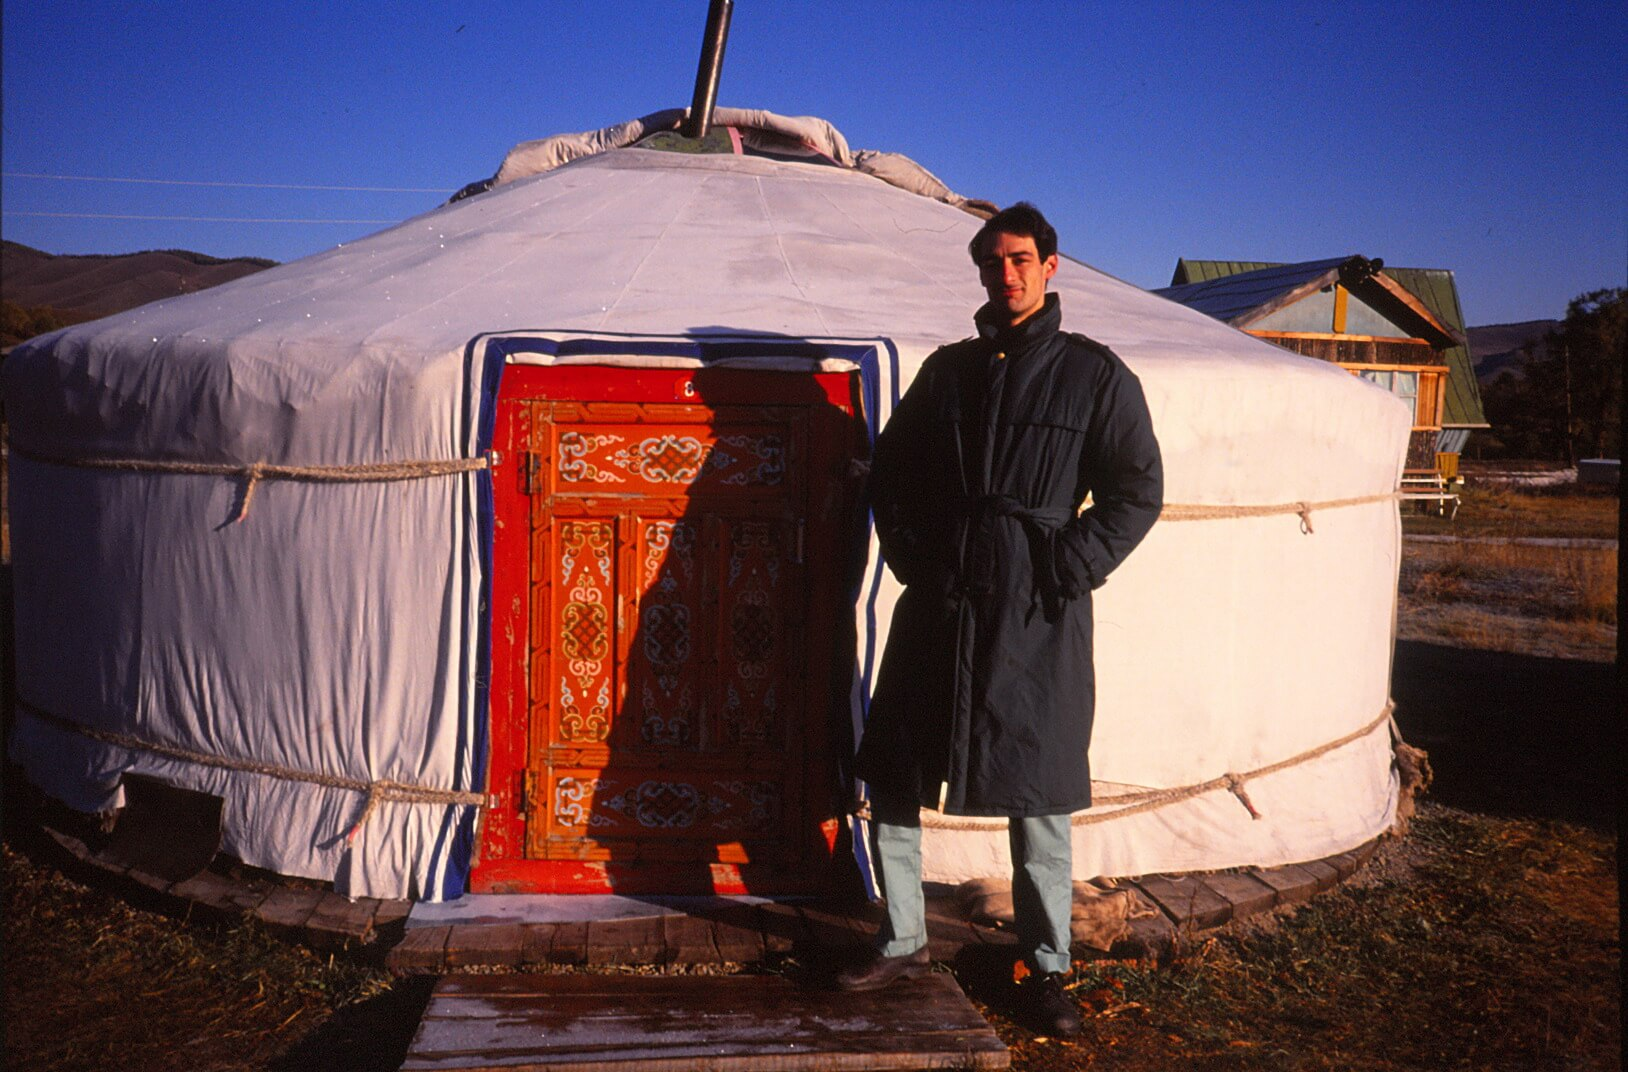 Me outside my yurt, September 1991.